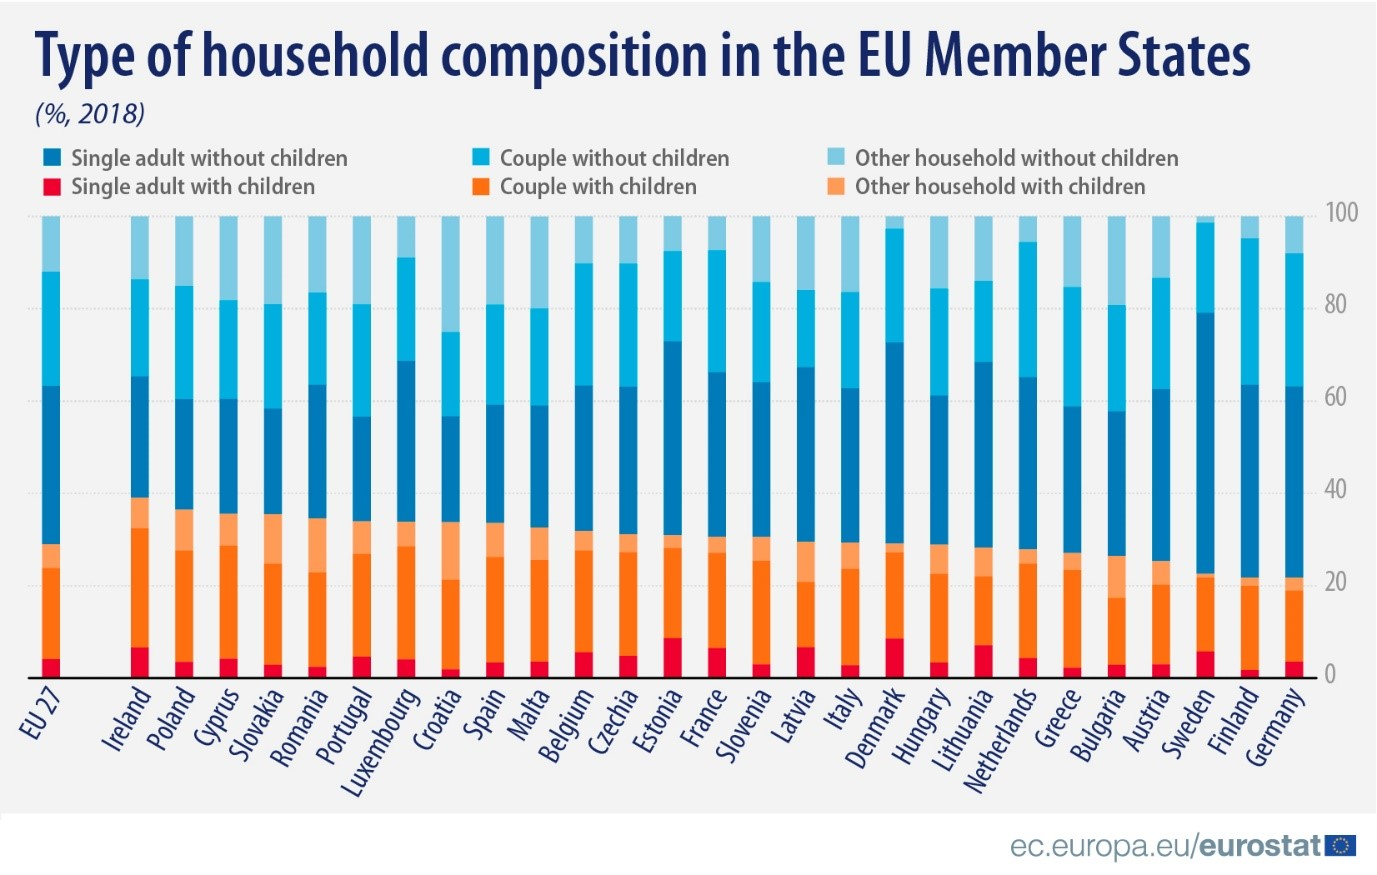 Type of household composition in the EU Member States